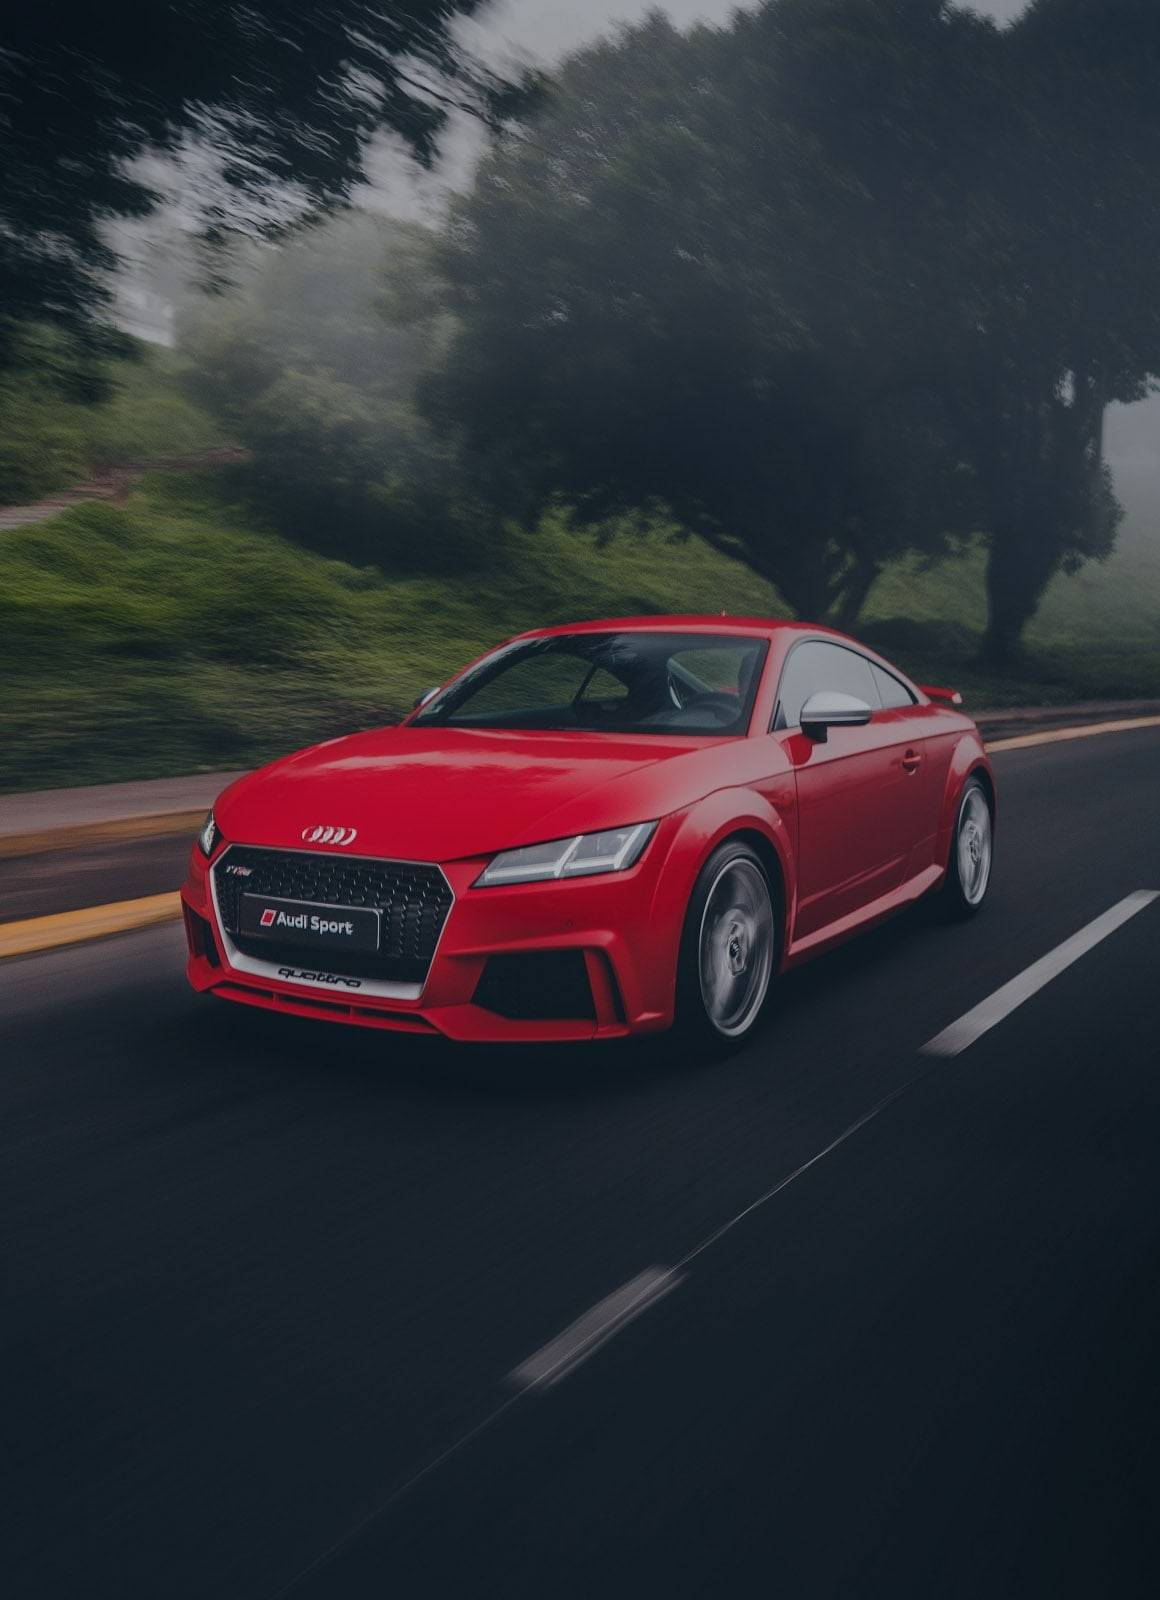 Get an instant Audi car insurance quote online